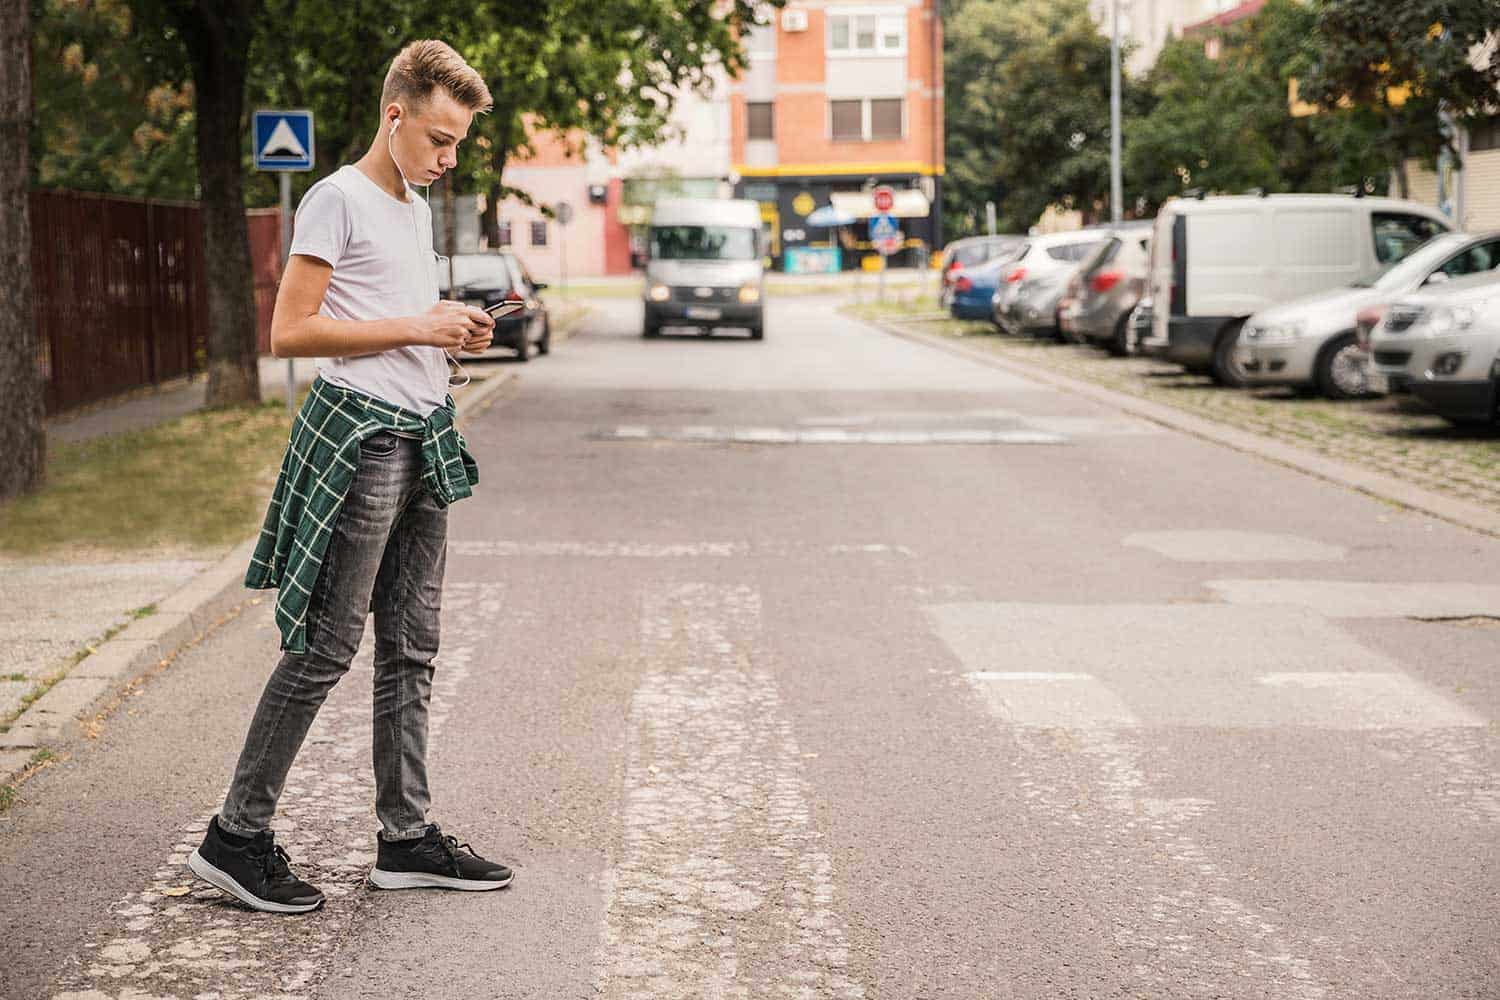 Kid crossing the street at a pedestrian crossing and listening to music on his cellphone